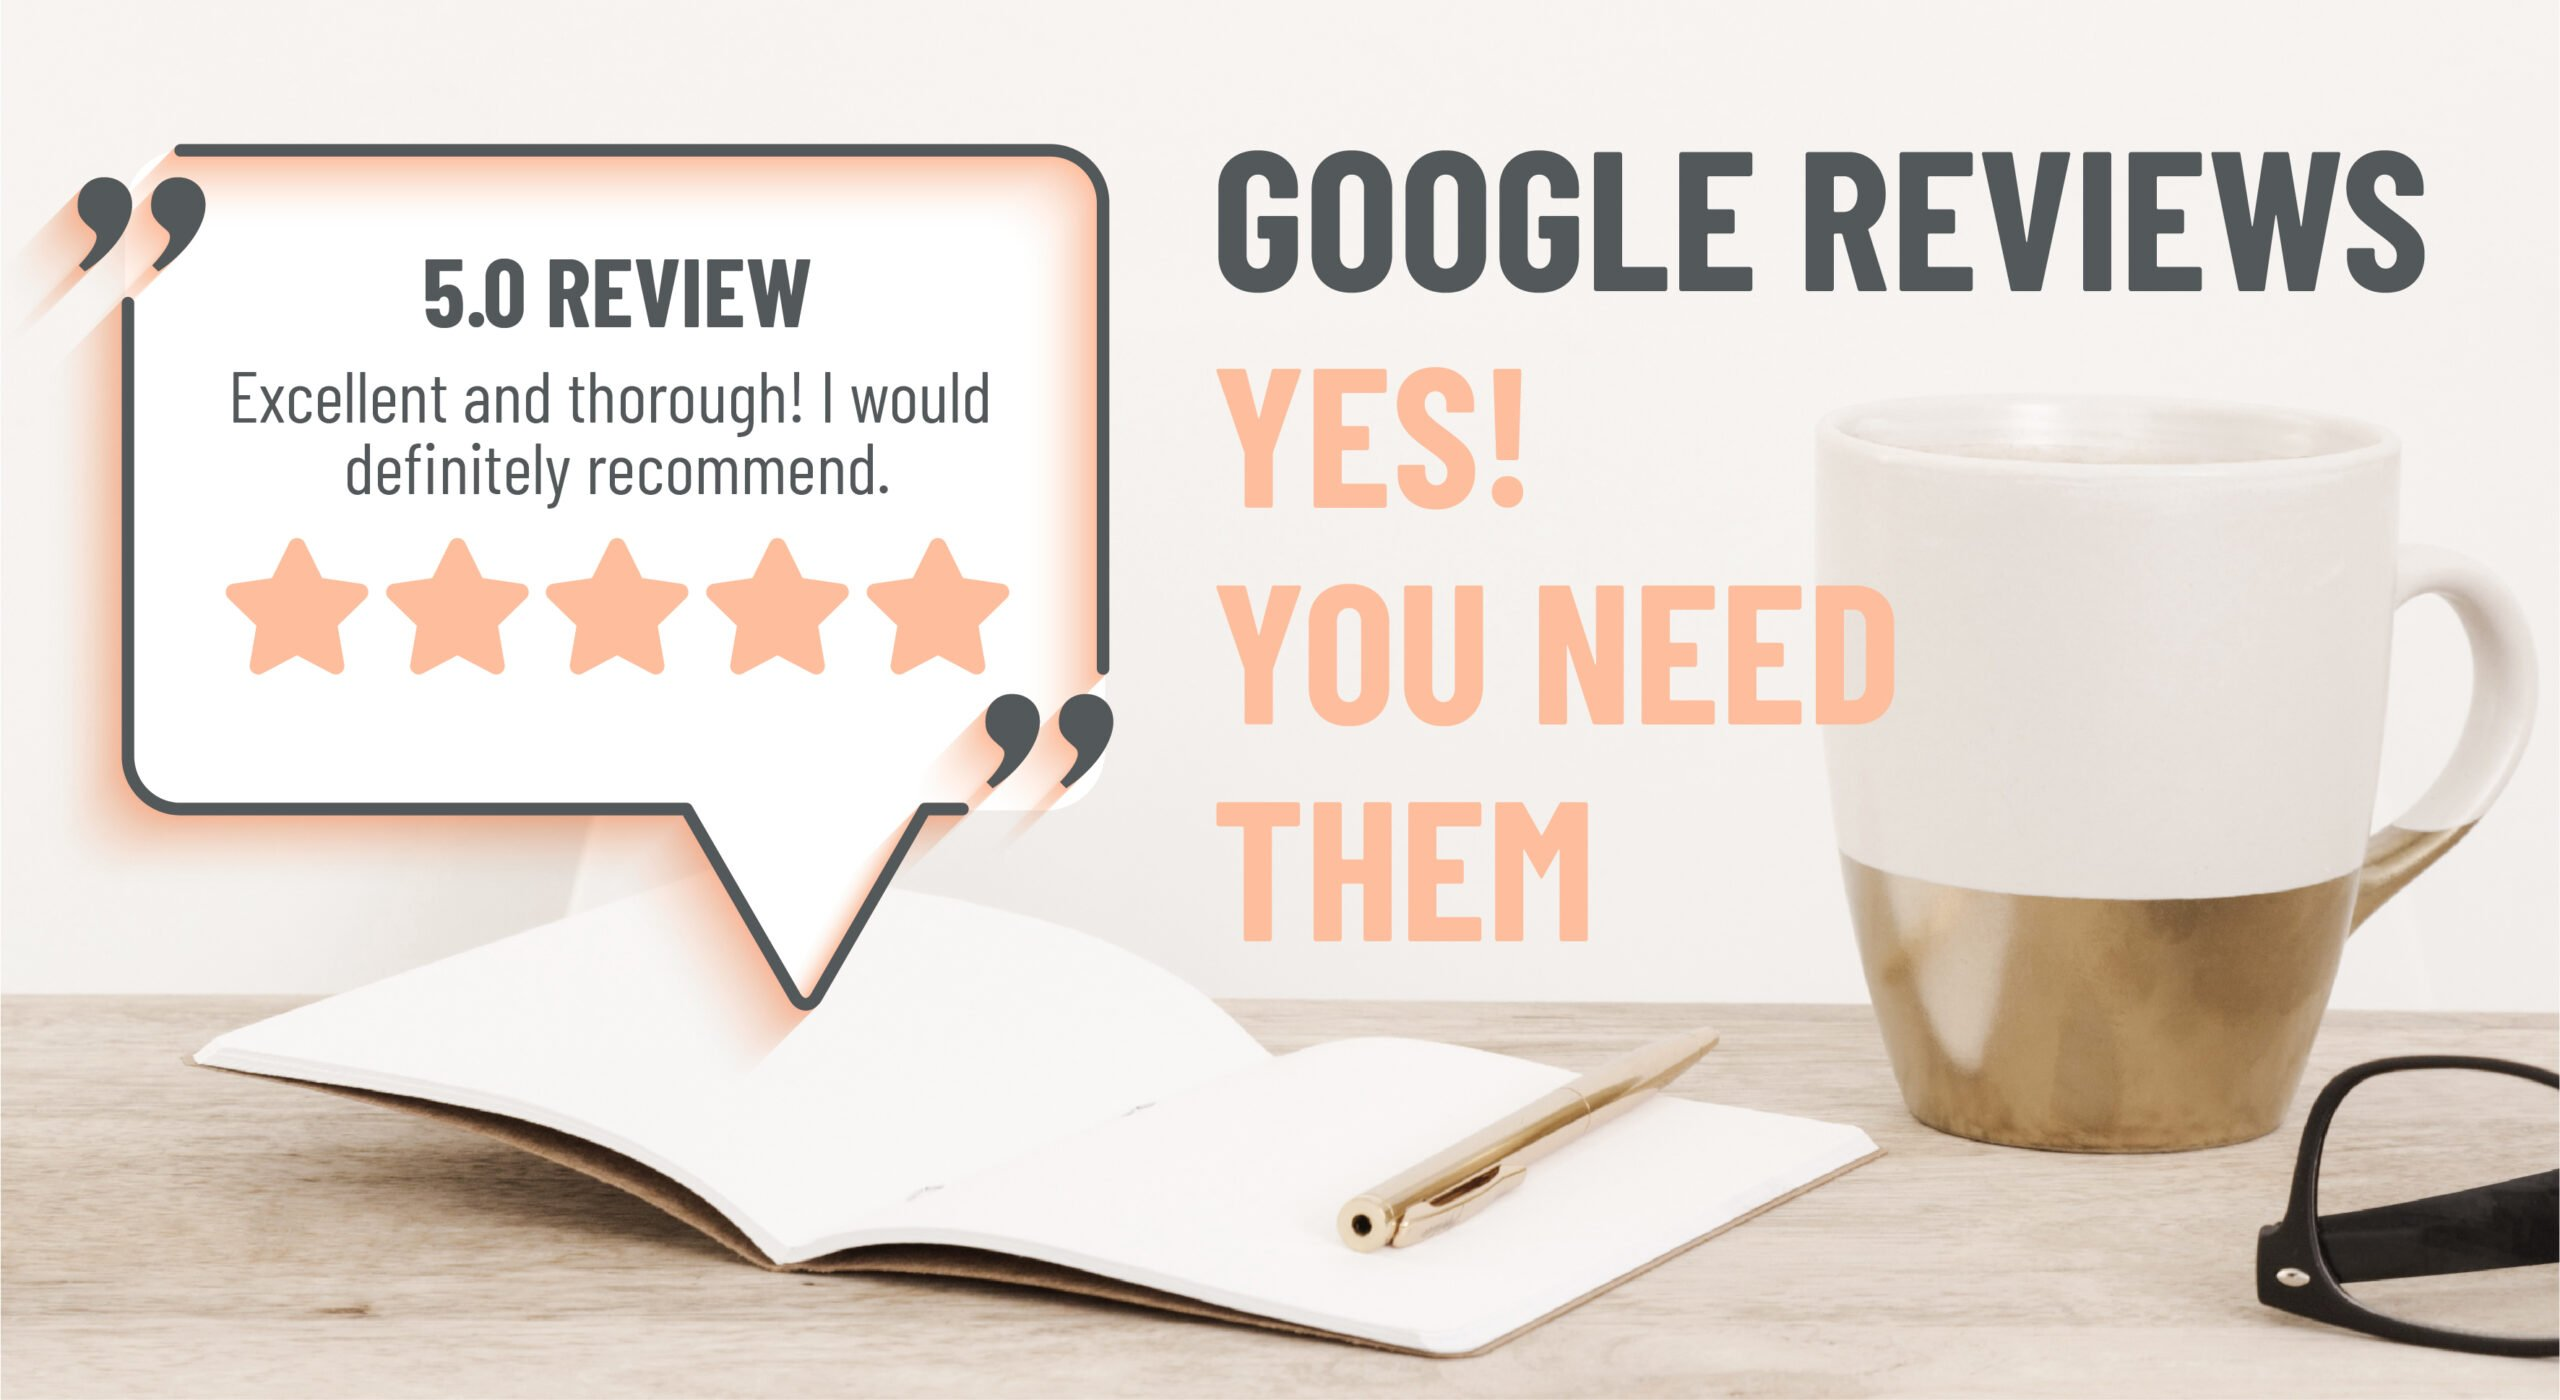 Reviews are king - small businesses need reviews